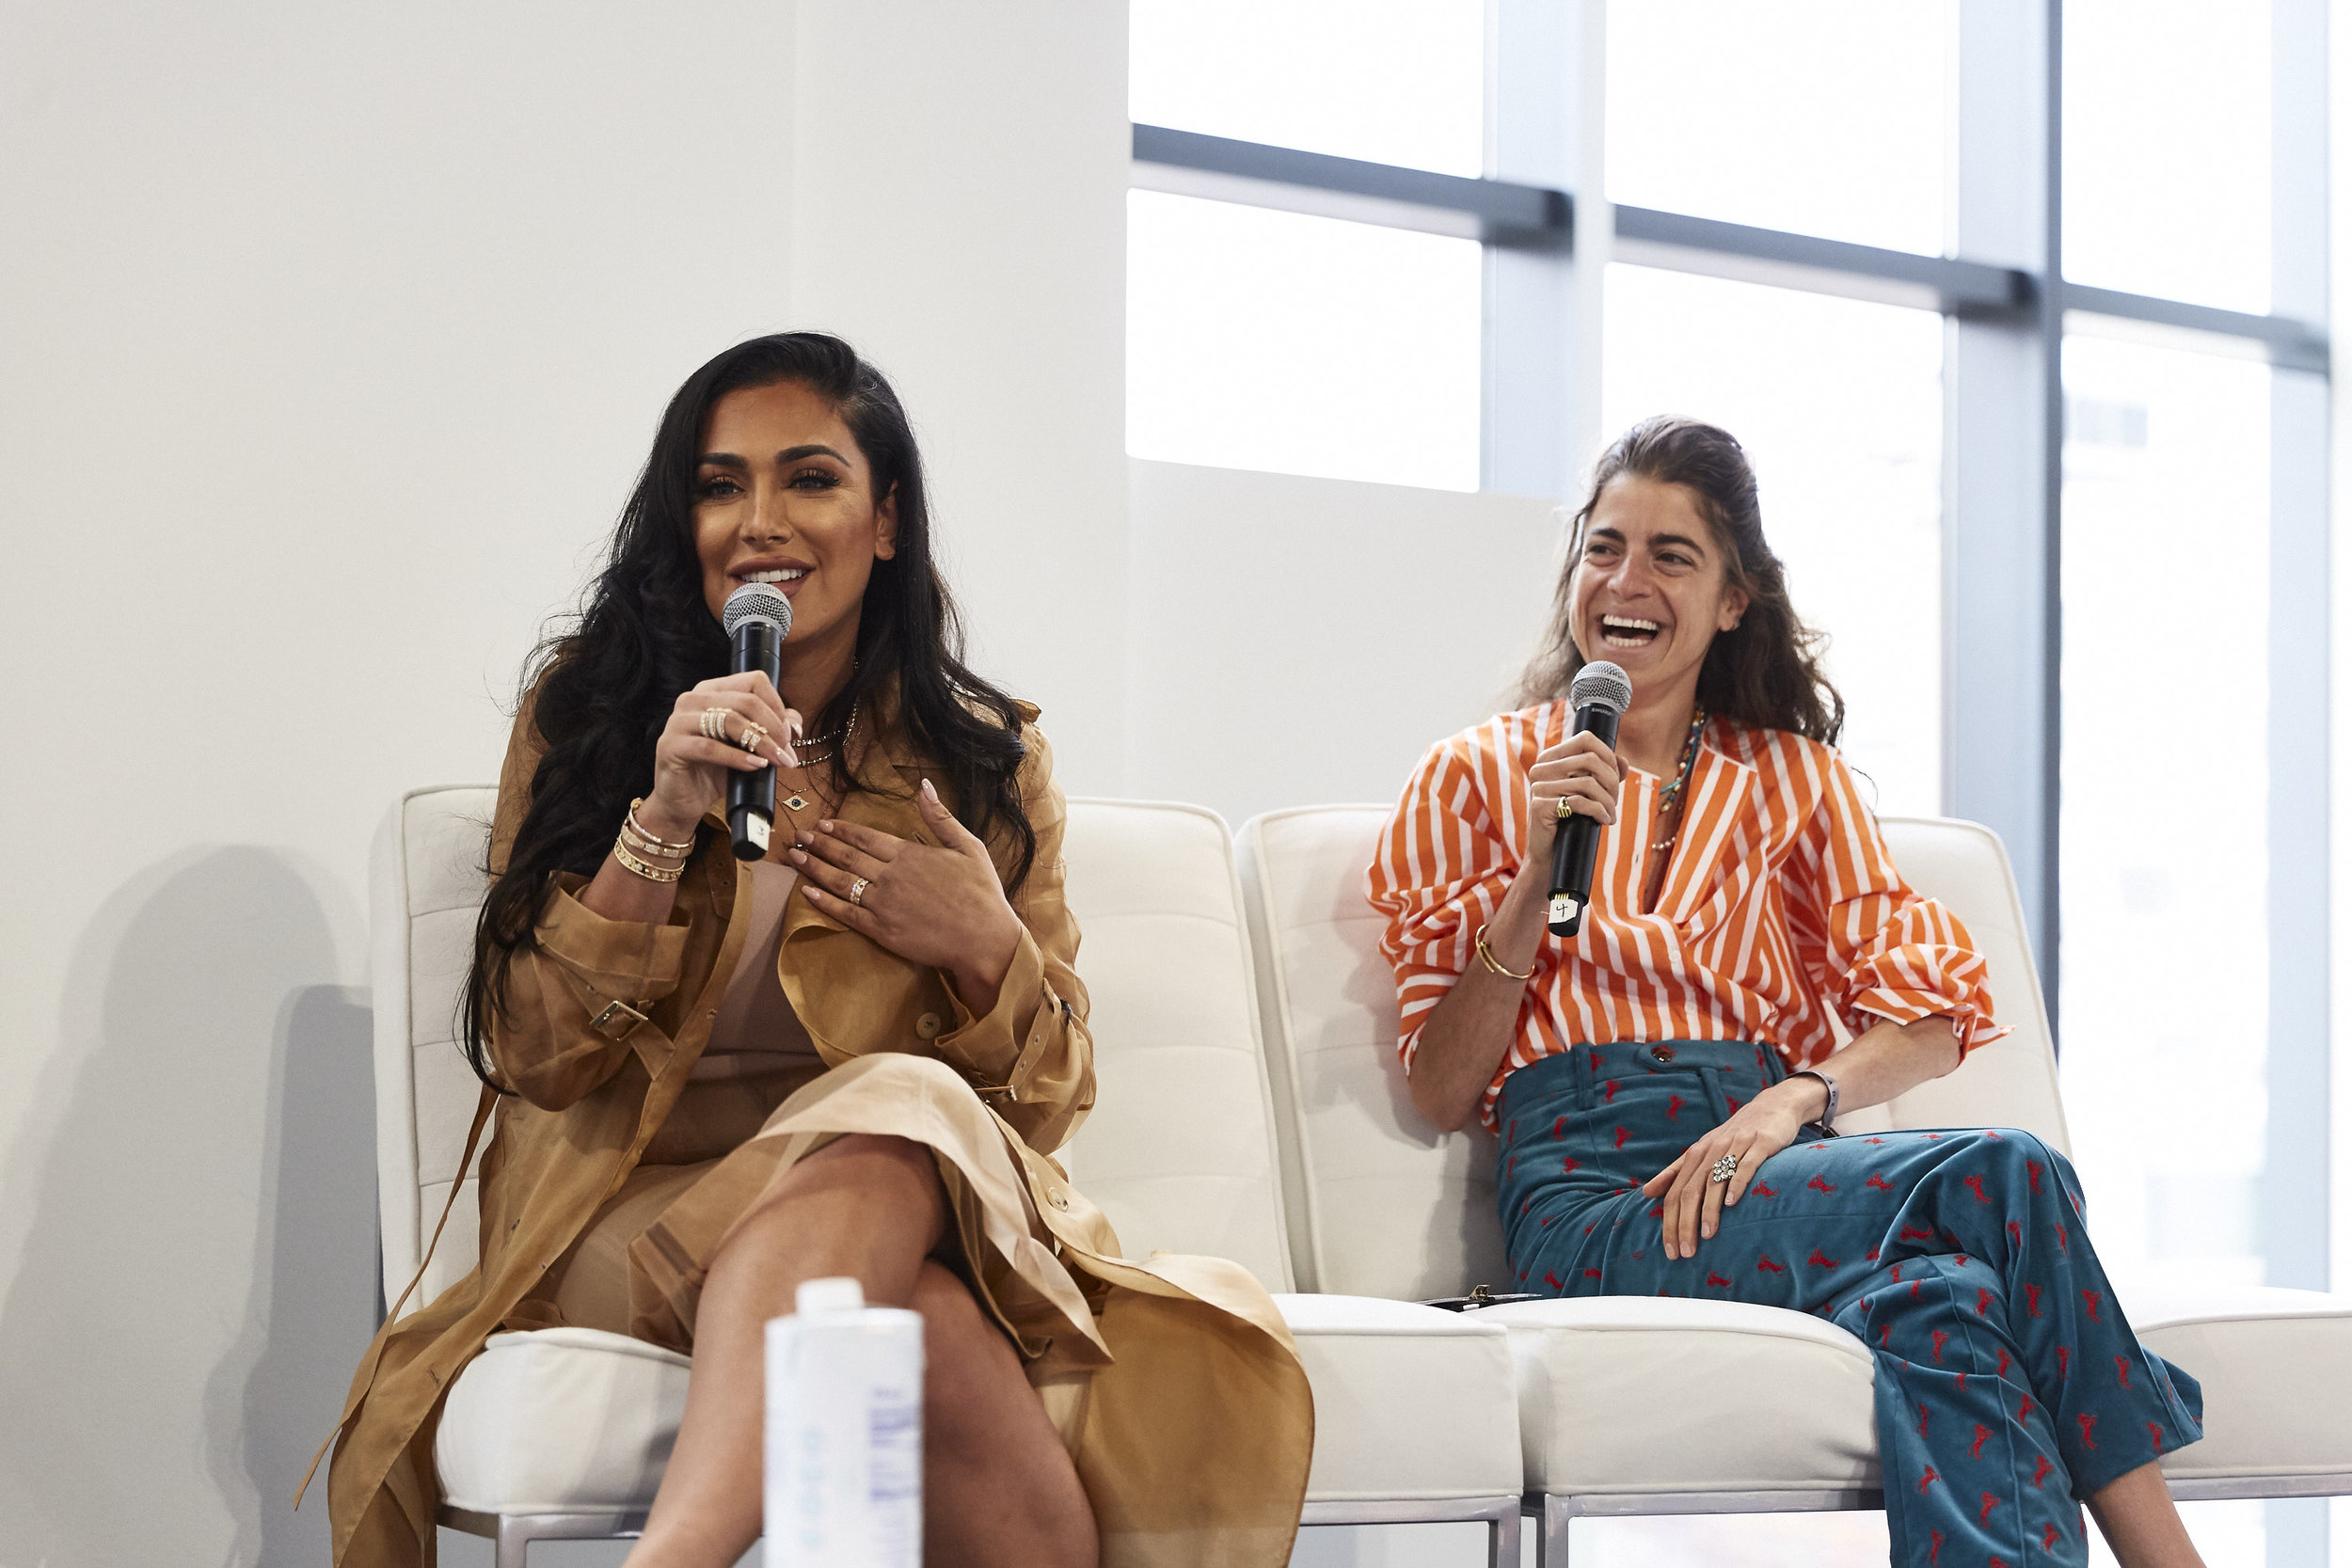 Huda Kattan (left) and Leandra Cohen of Manrepeller